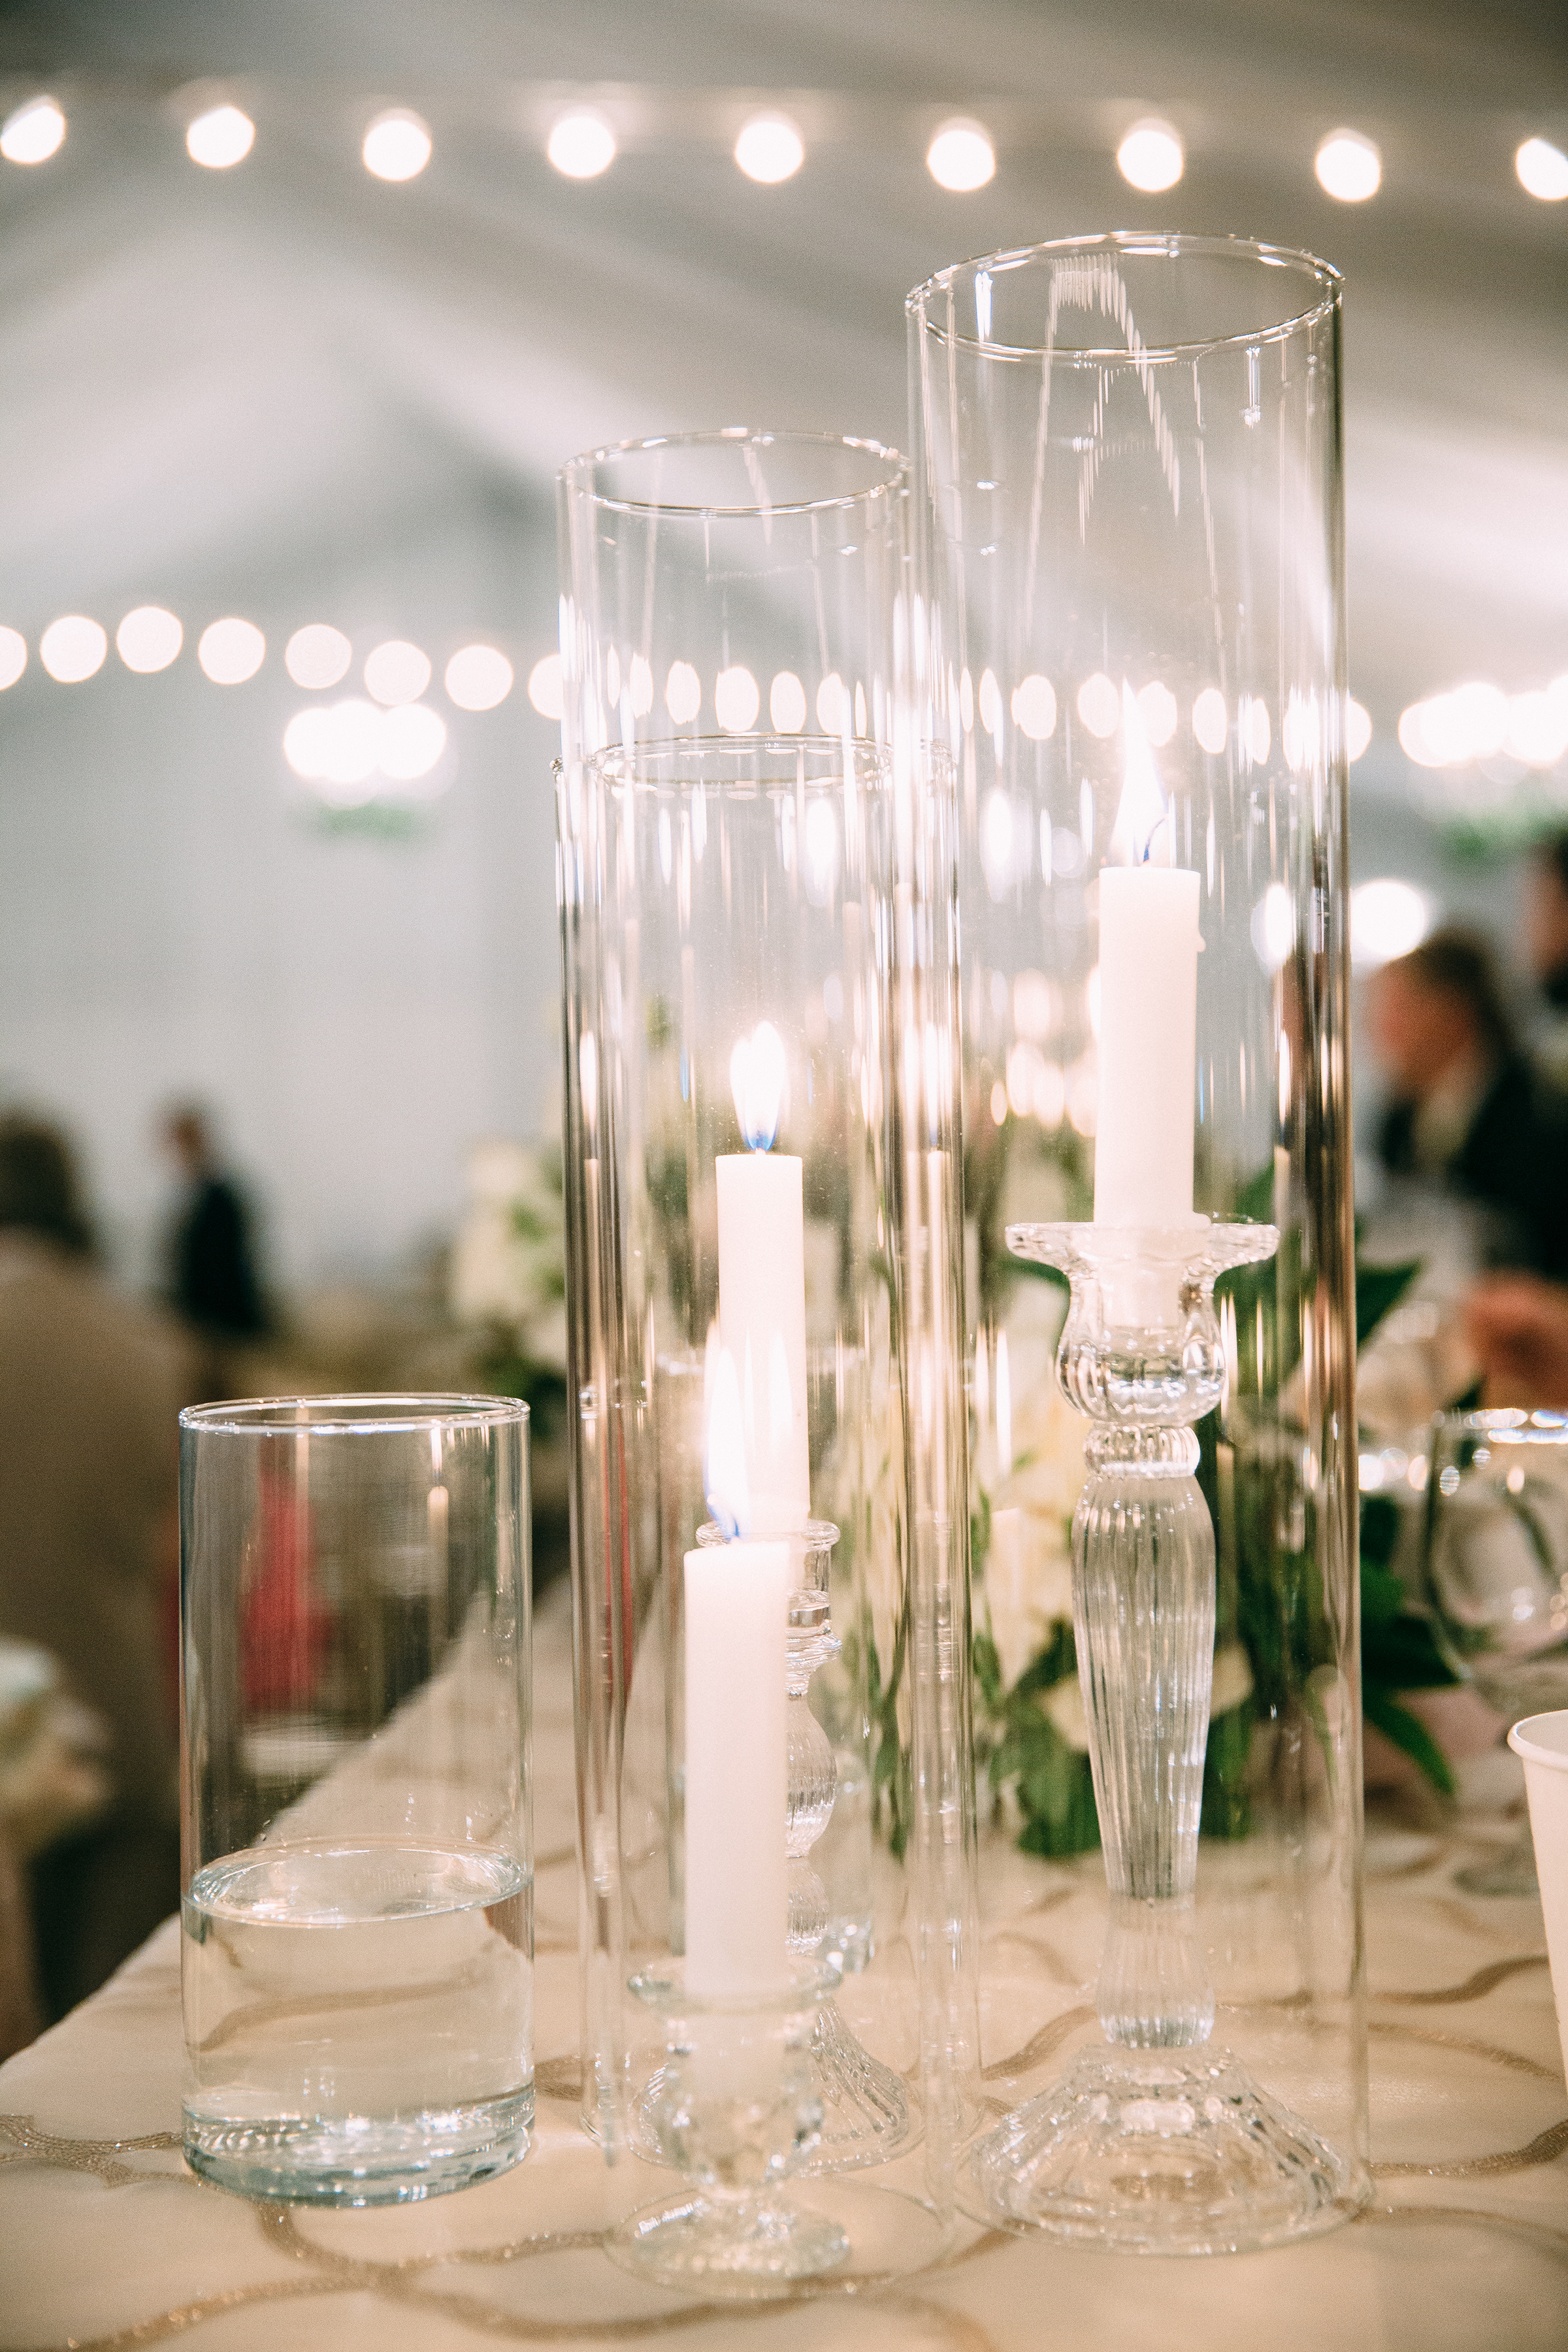 clear_candles_flower_greenery_champagne_tablecloth_reception_violette_fleurs_anna_perevertaylo_haggin_oaks_sacramento.jpg